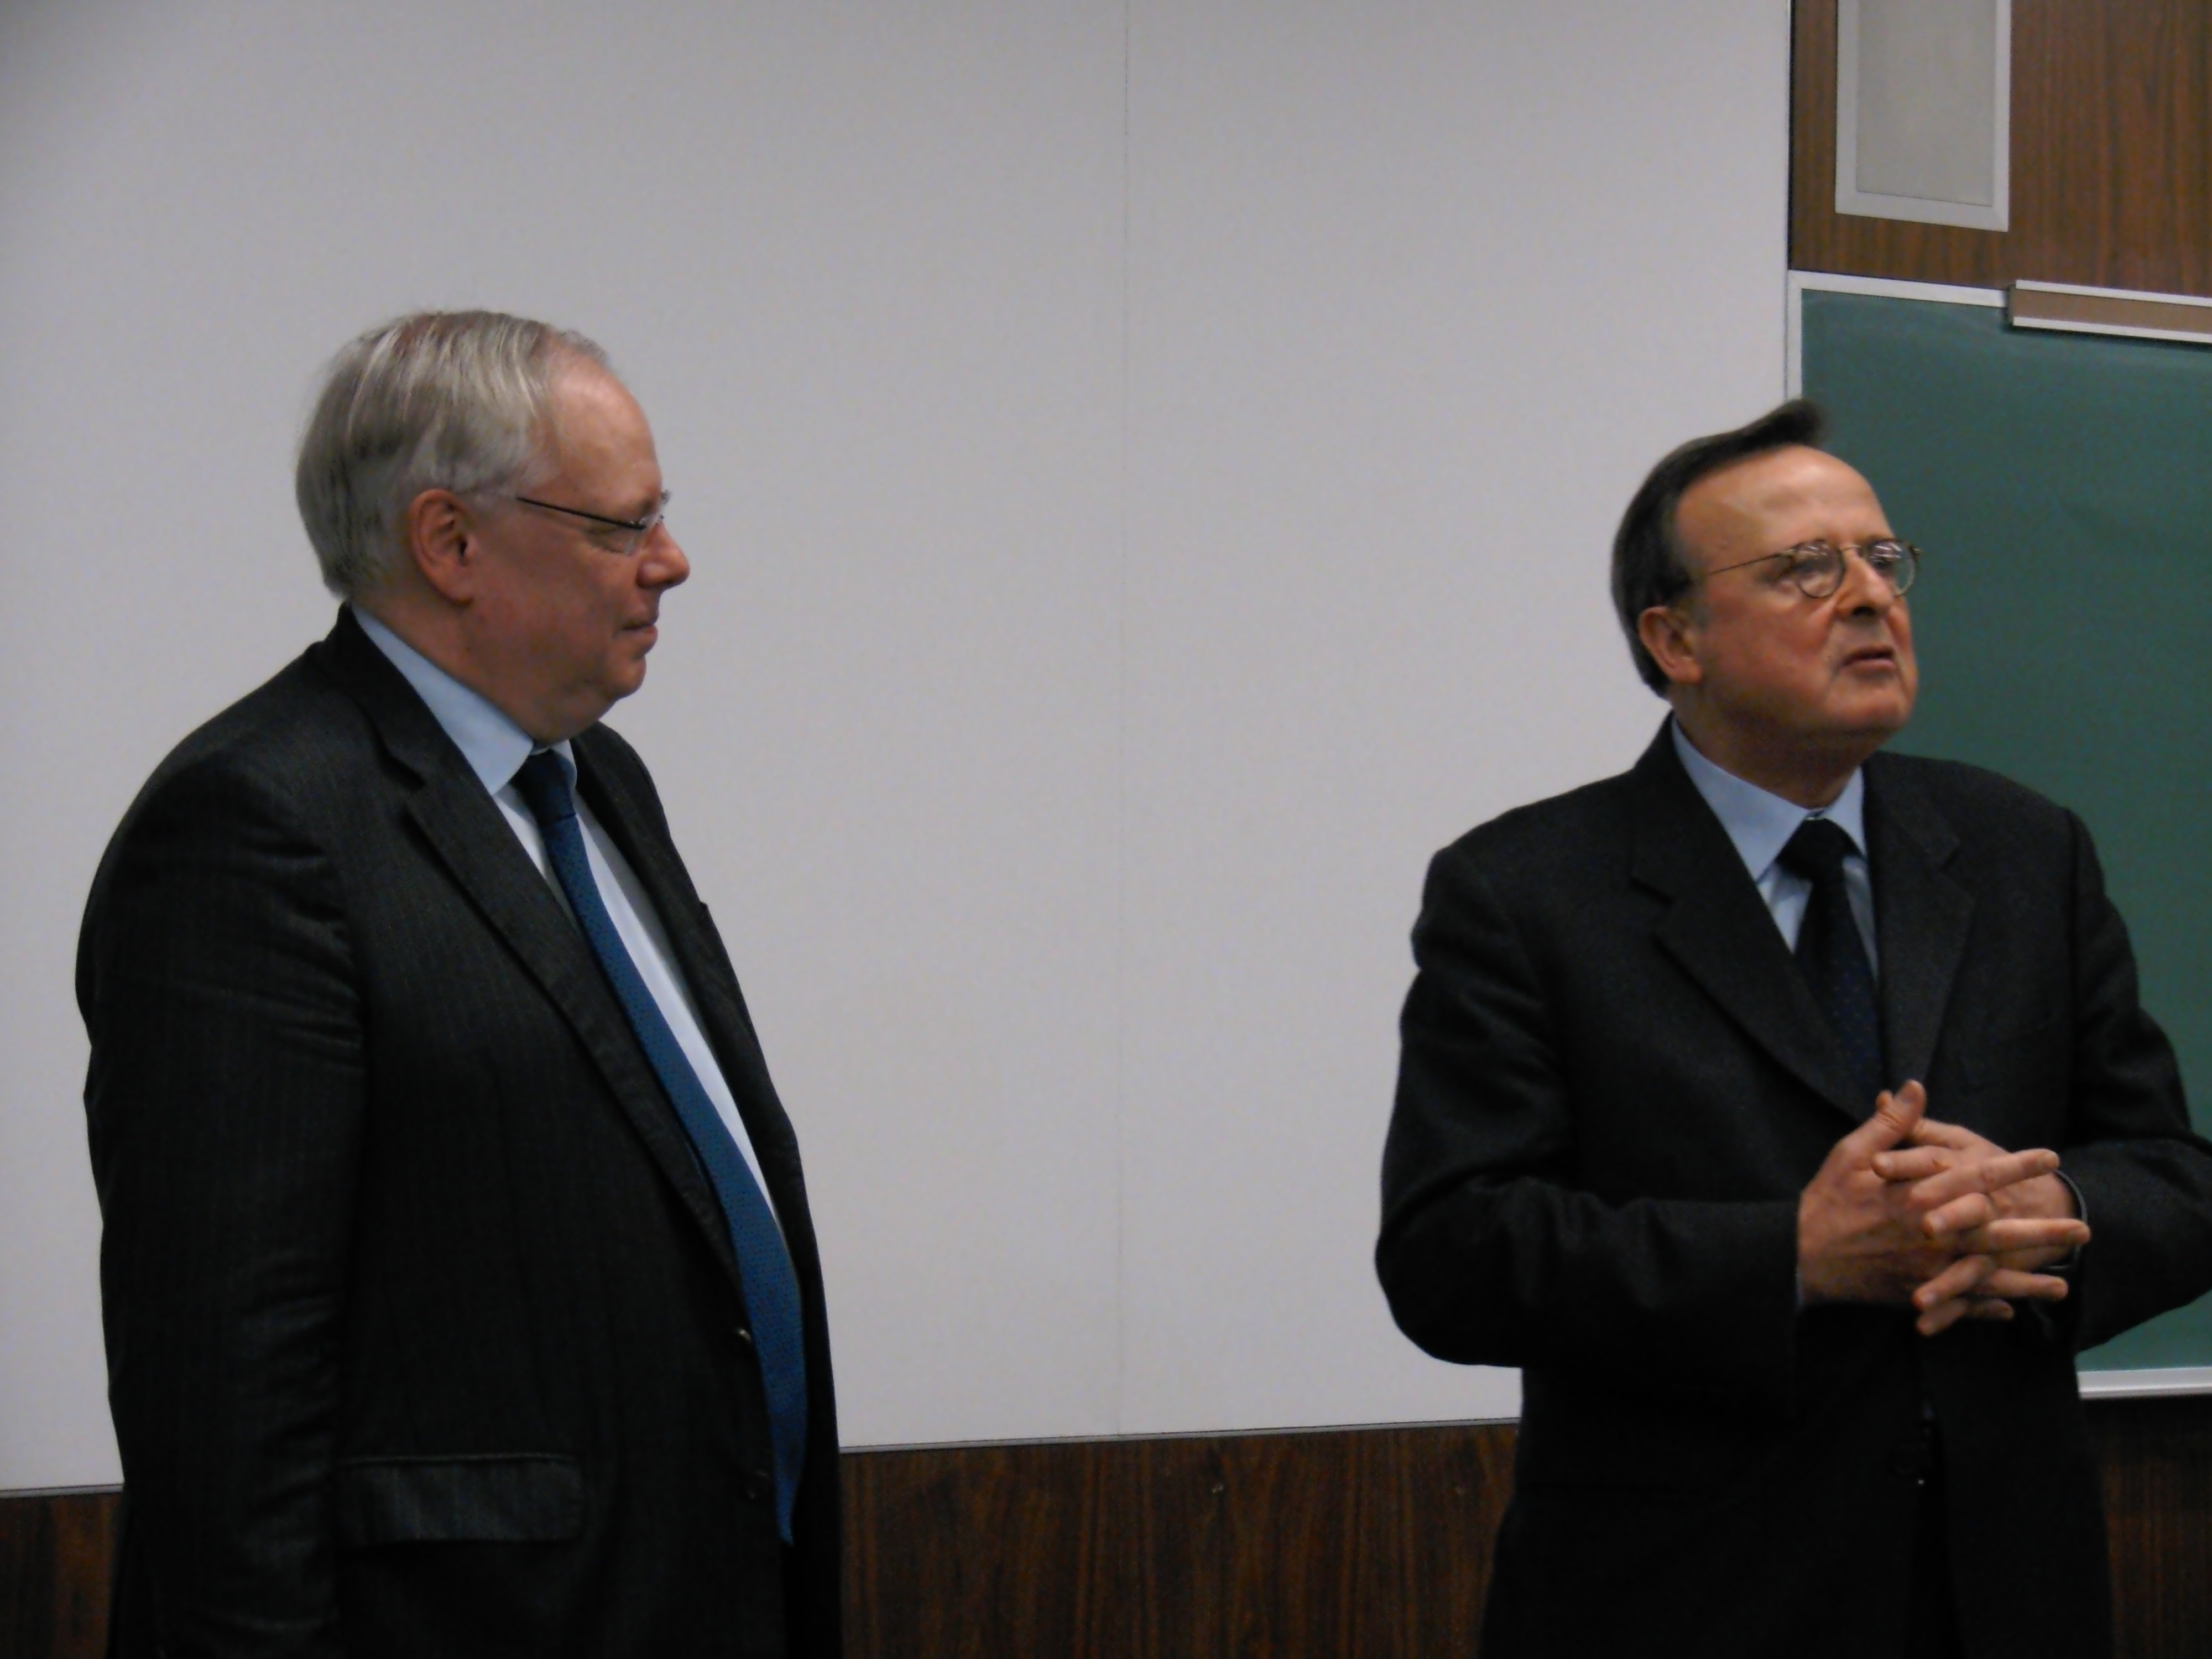 President Dean Spielmann and Vice-president Guido Raimondi of the European Court of Human Rights.